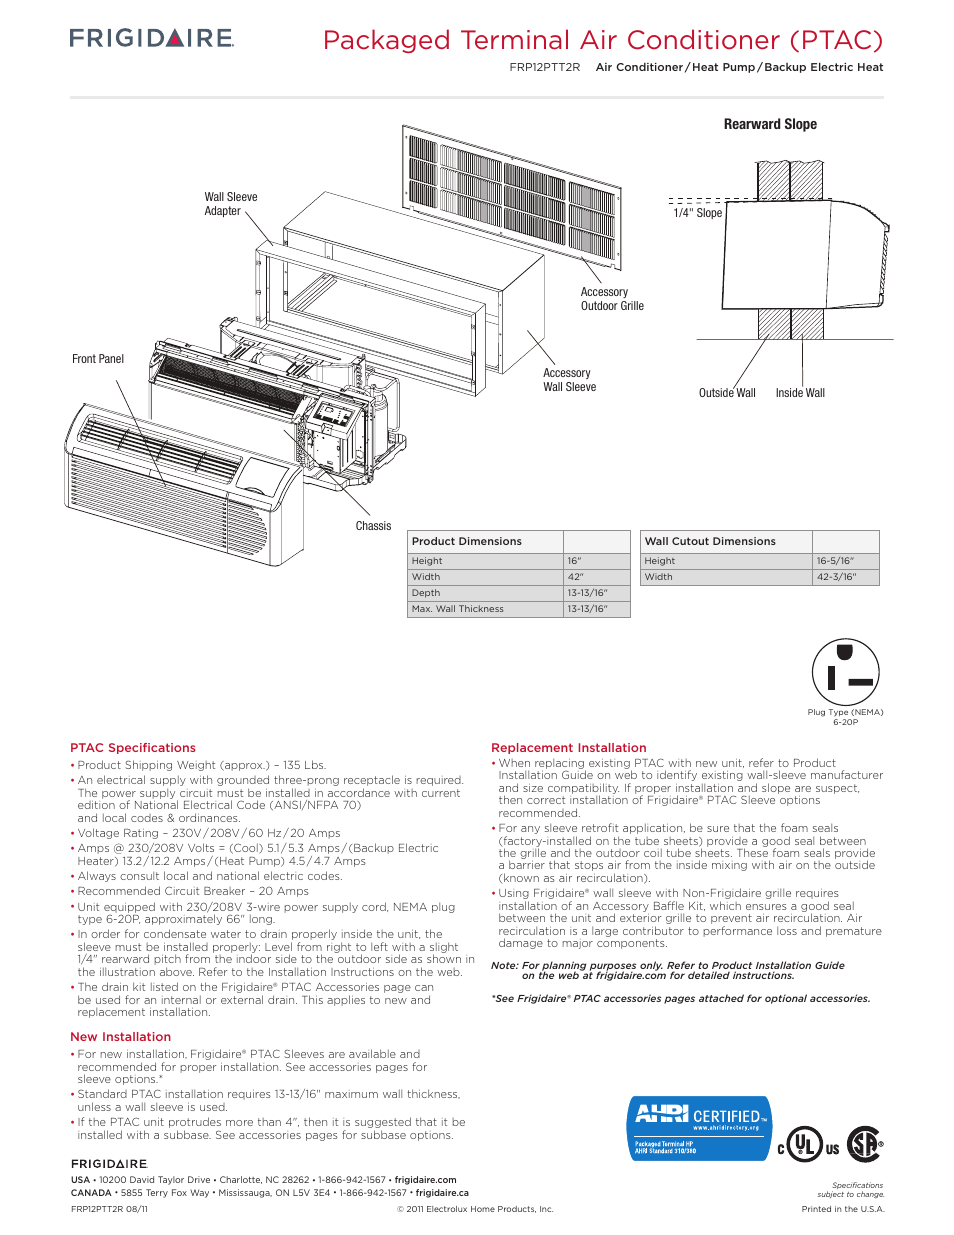 hight resolution of packaged terminal air conditioner ptac rearward slope frigidaire frp12ptt2r user manual page 3 6